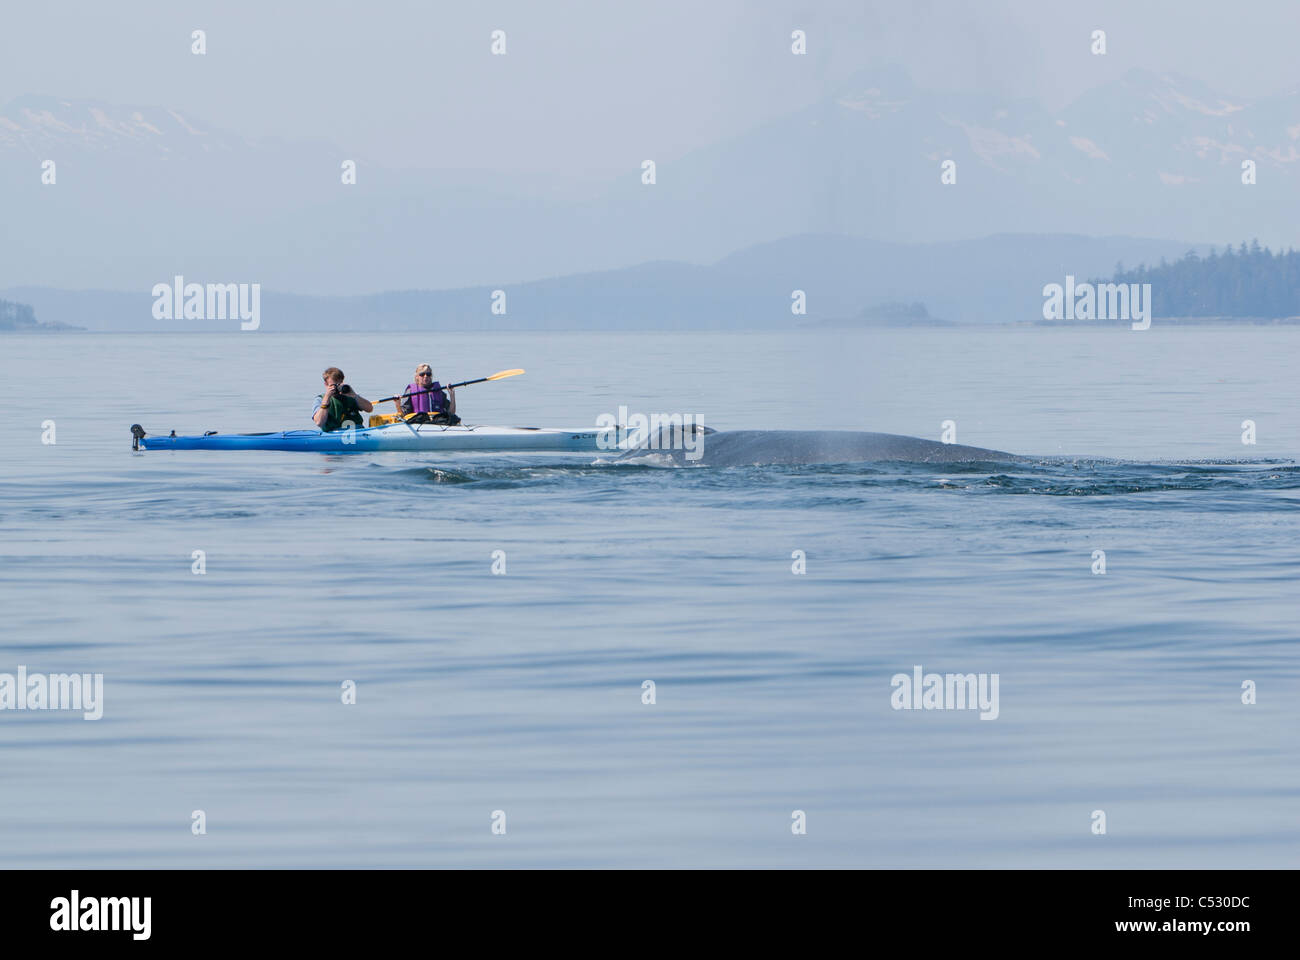 Humpback whale surfaces near sea kayakers in Frederick Sound, Inside Passage, Southeast Alaska, Summer Stock Photo